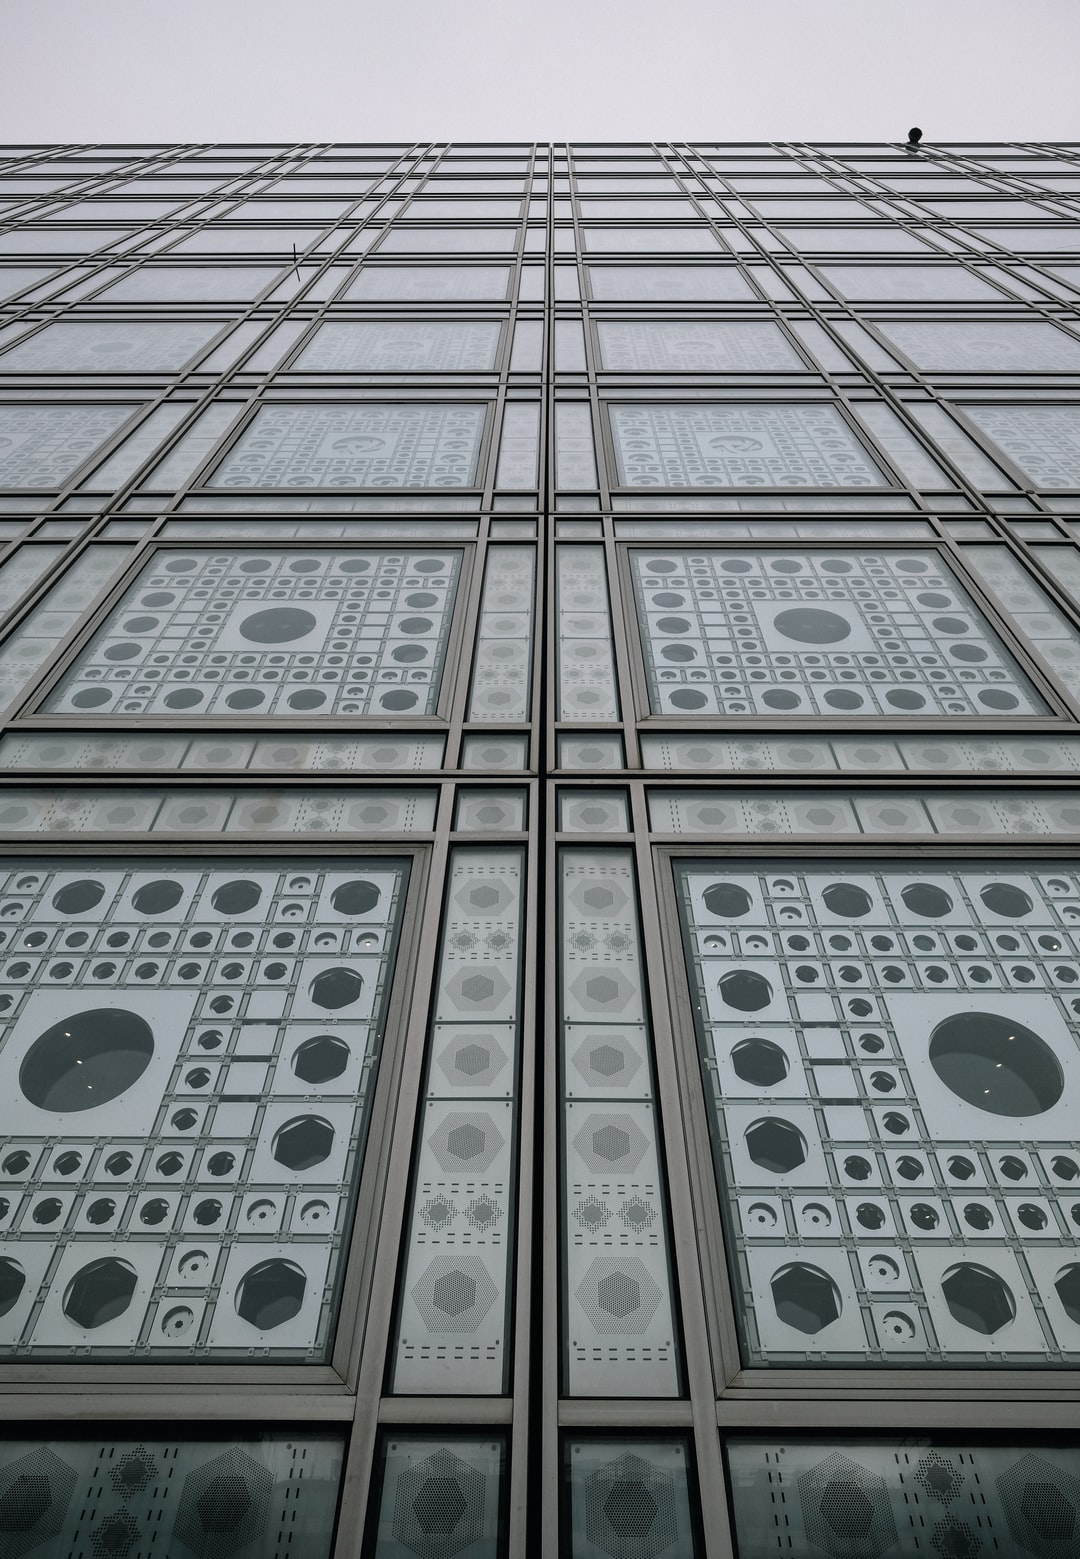 The institute of the Arab world is a huge building, close to the Seine. These windows are a huge pattern, hypnotizing and reflecting the colors of the sky.